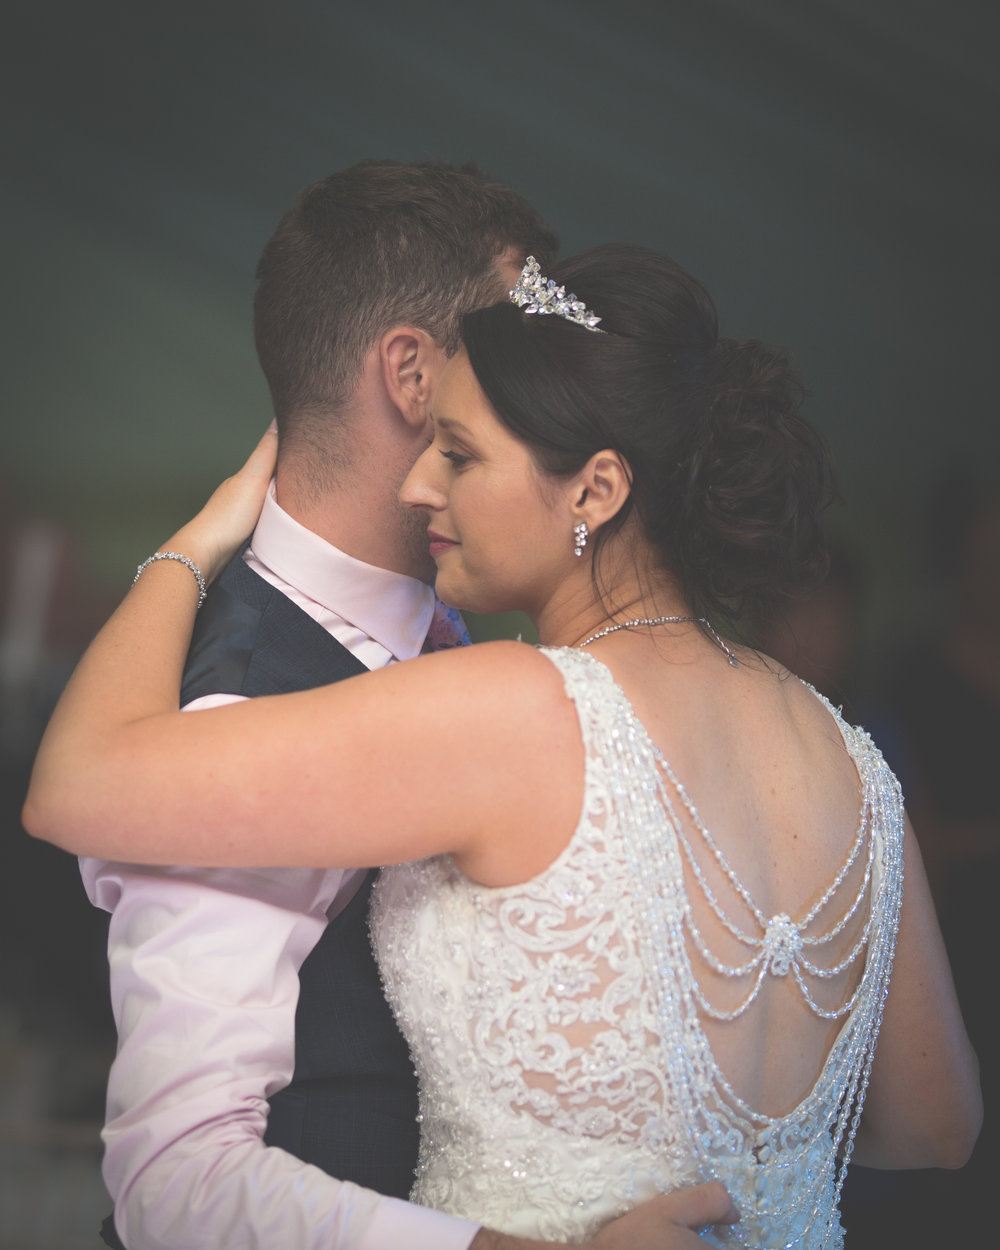 Northern Ireland Wedding Photographer | Brian McEwan | Louise & Darren-508.jpg